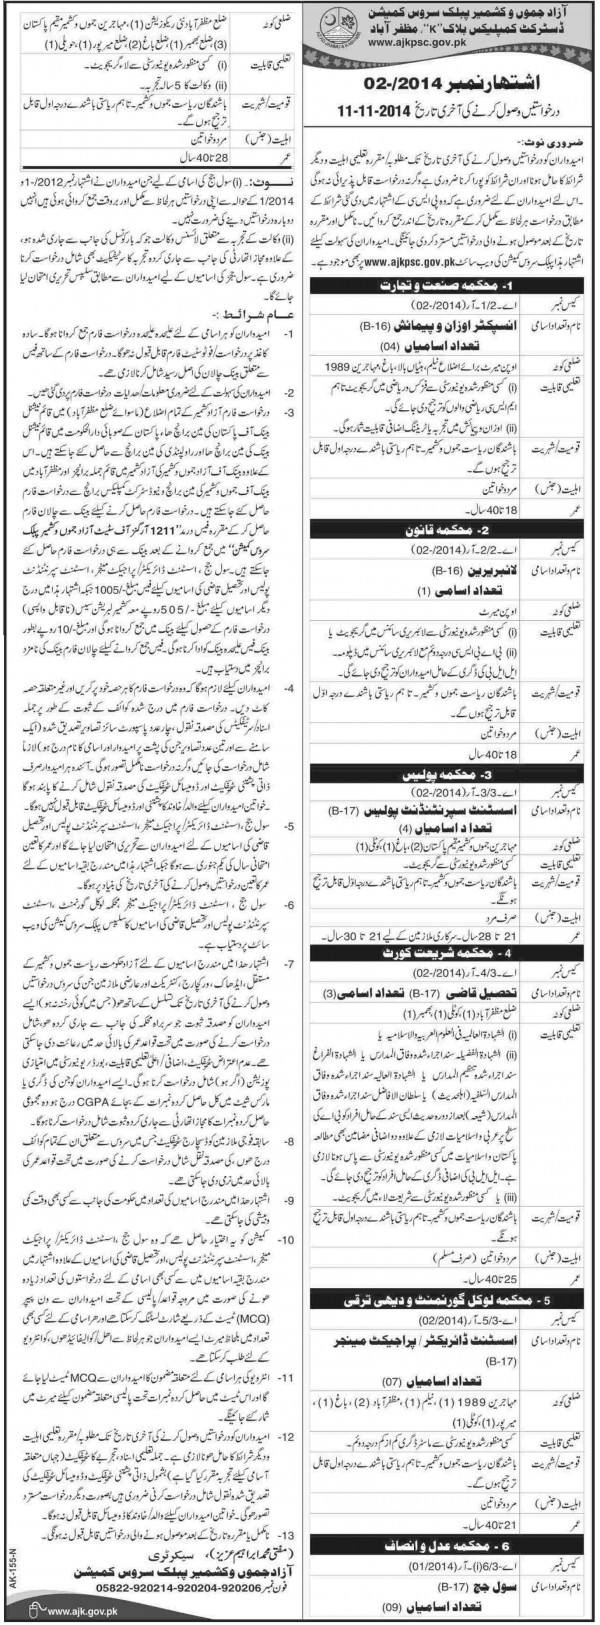 AJK-PSC-Jobs-2014-Eligibility-Criteria-600x1625 Form For Job In Jammu on training for jobs, flyers for jobs, handbook for jobs, charts for jobs, search for jobs, applications for jobs, facilities for jobs, tables for jobs, supplies for jobs, templates for jobs, education for jobs, contacts for jobs, apply for jobs, logos for jobs, statistics for jobs, contracts for jobs, graphics for jobs, fields for jobs, examples for jobs, drawings for jobs,